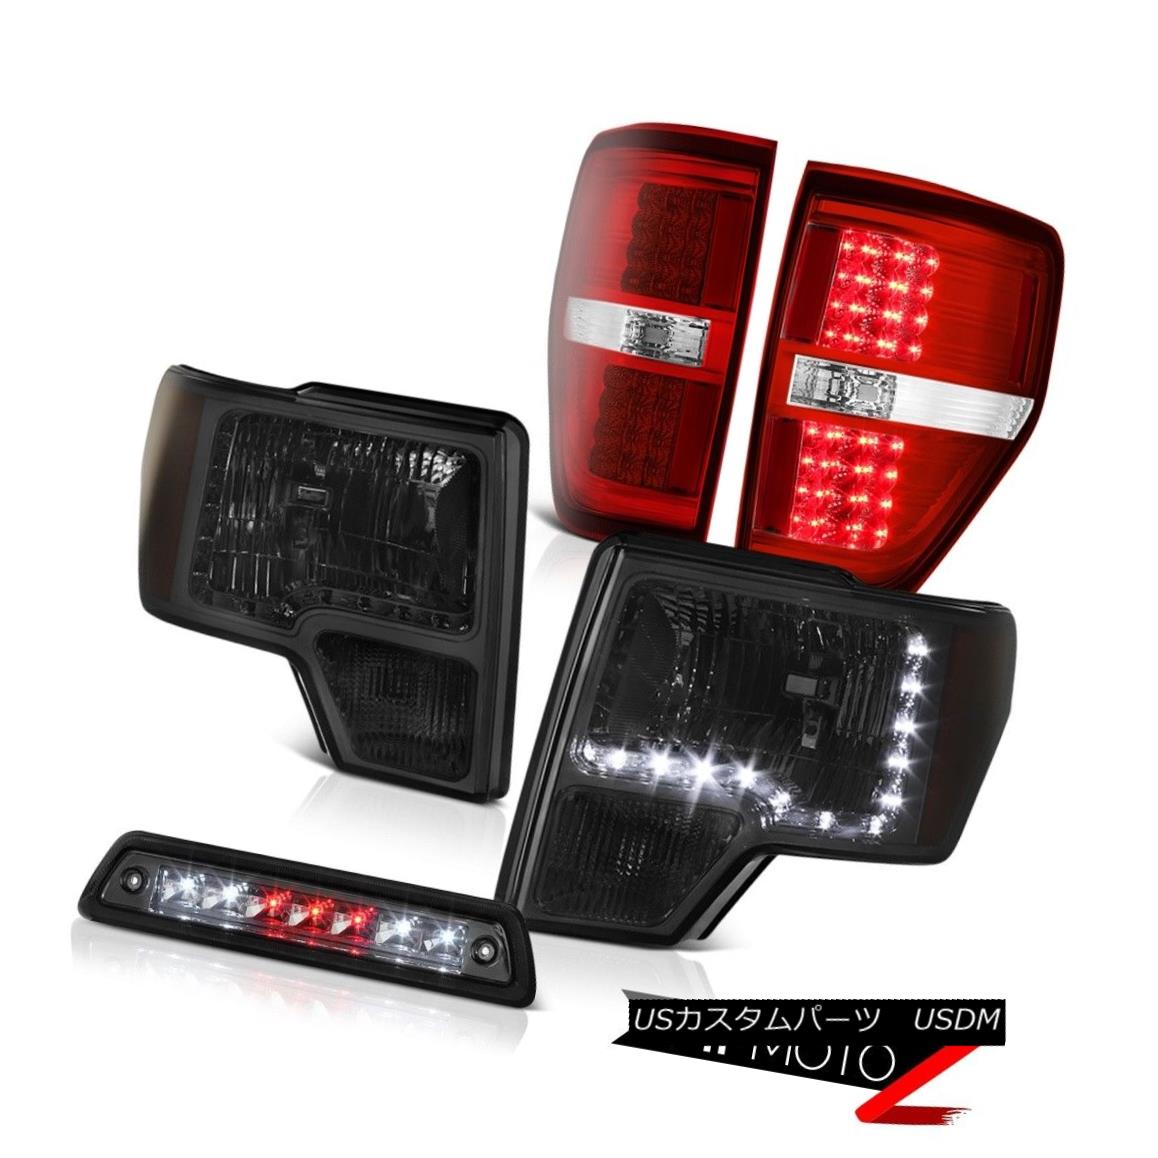 ヘッドライト 09-14 F150 XLT Third brake light taillamps headlamps led drl SMD